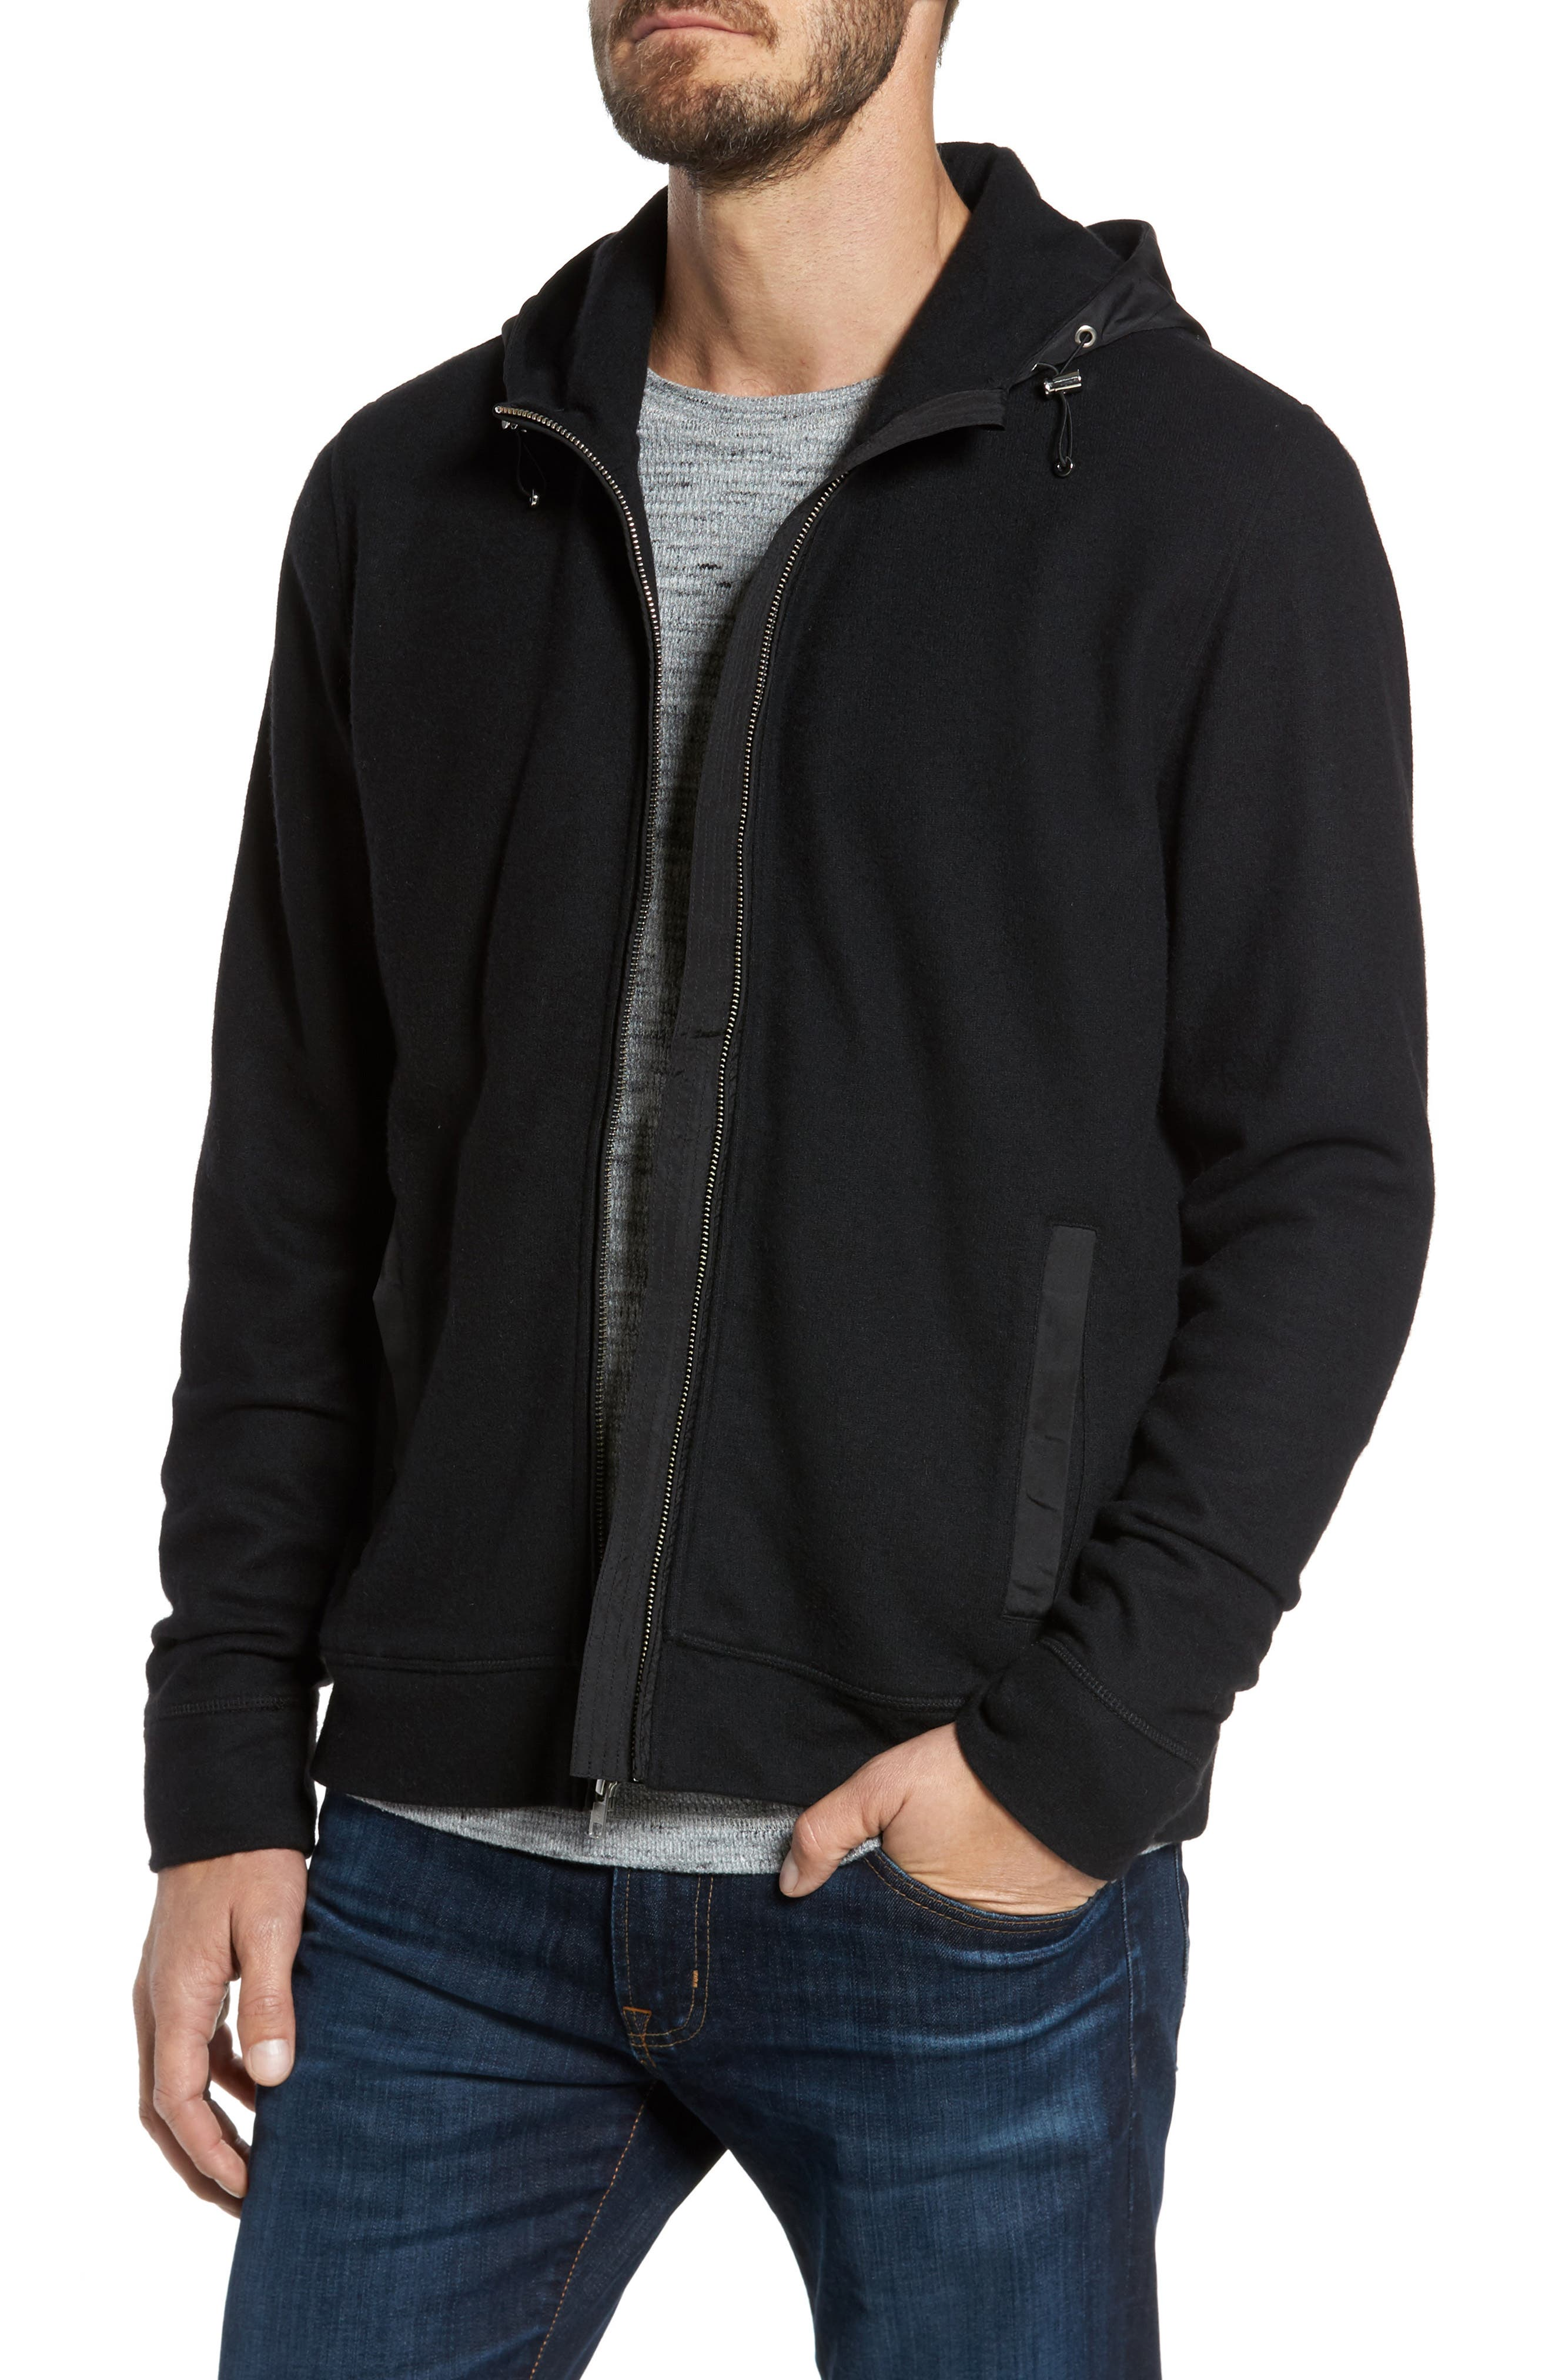 Alternate Image 1 Selected - Nordstrom Men's Shop Wool Blend Hooded Cardigan